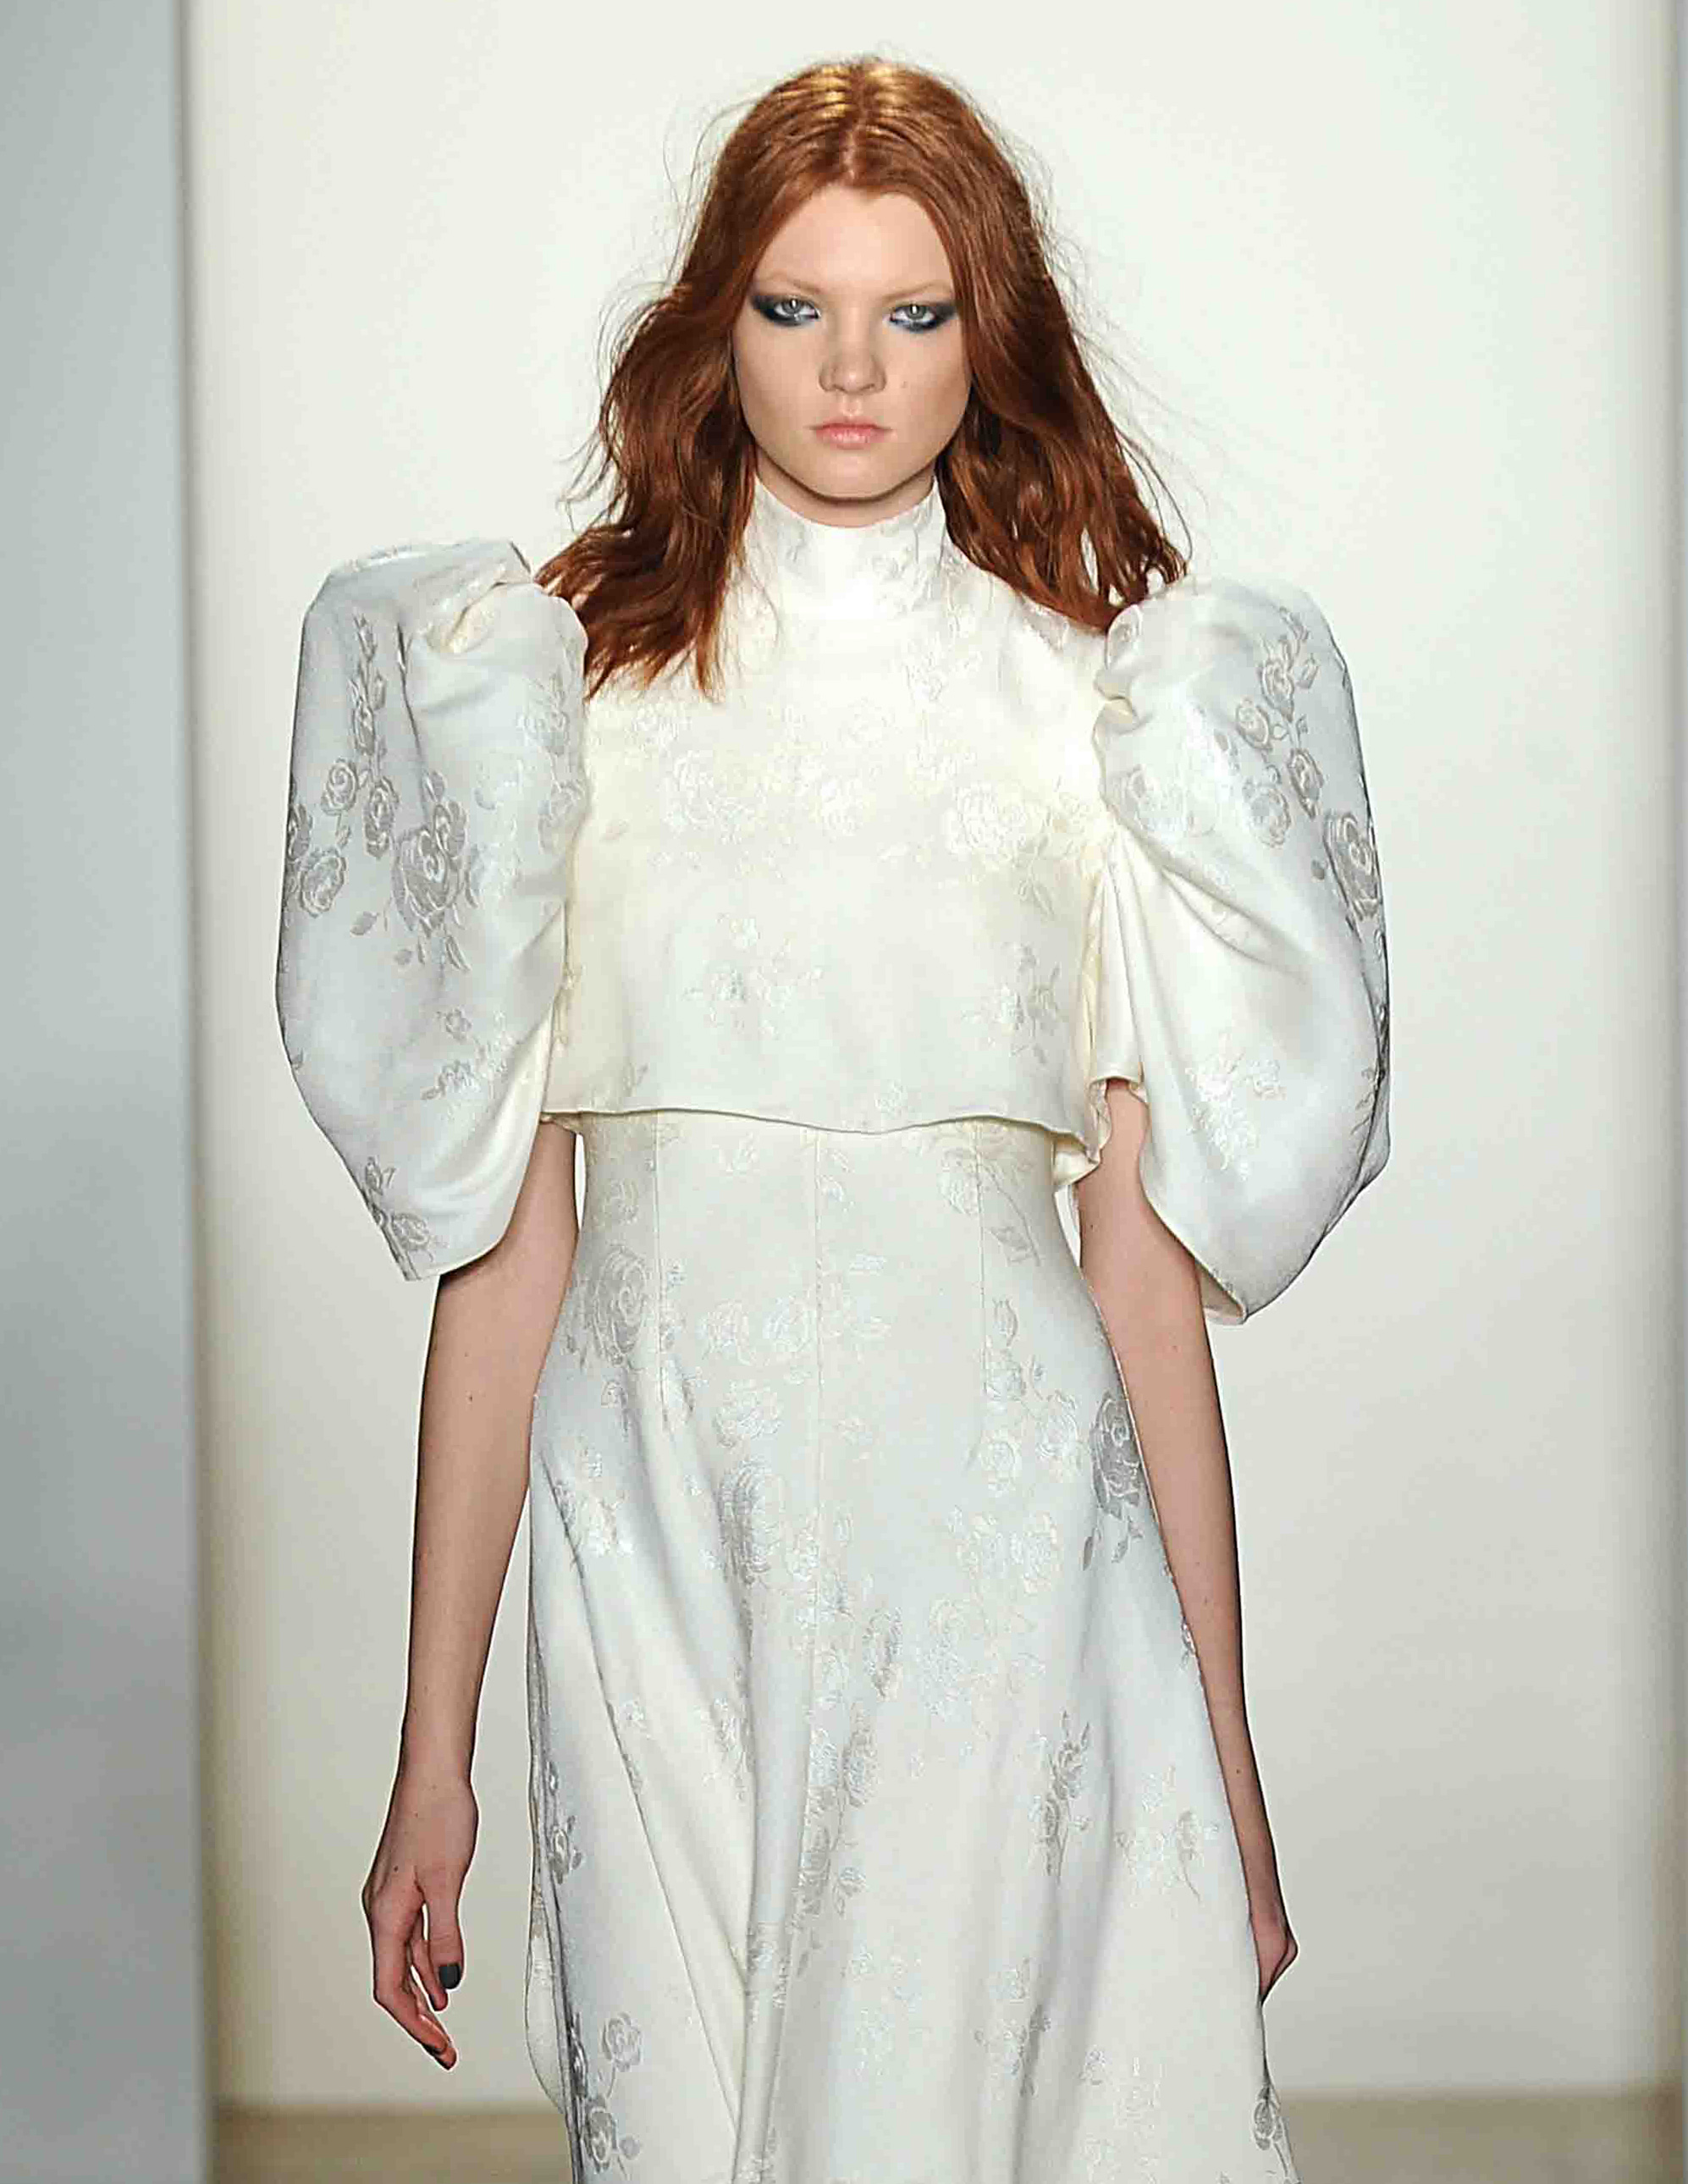 Houghton Fall Winter 2014 New York Fashion Week February 2014